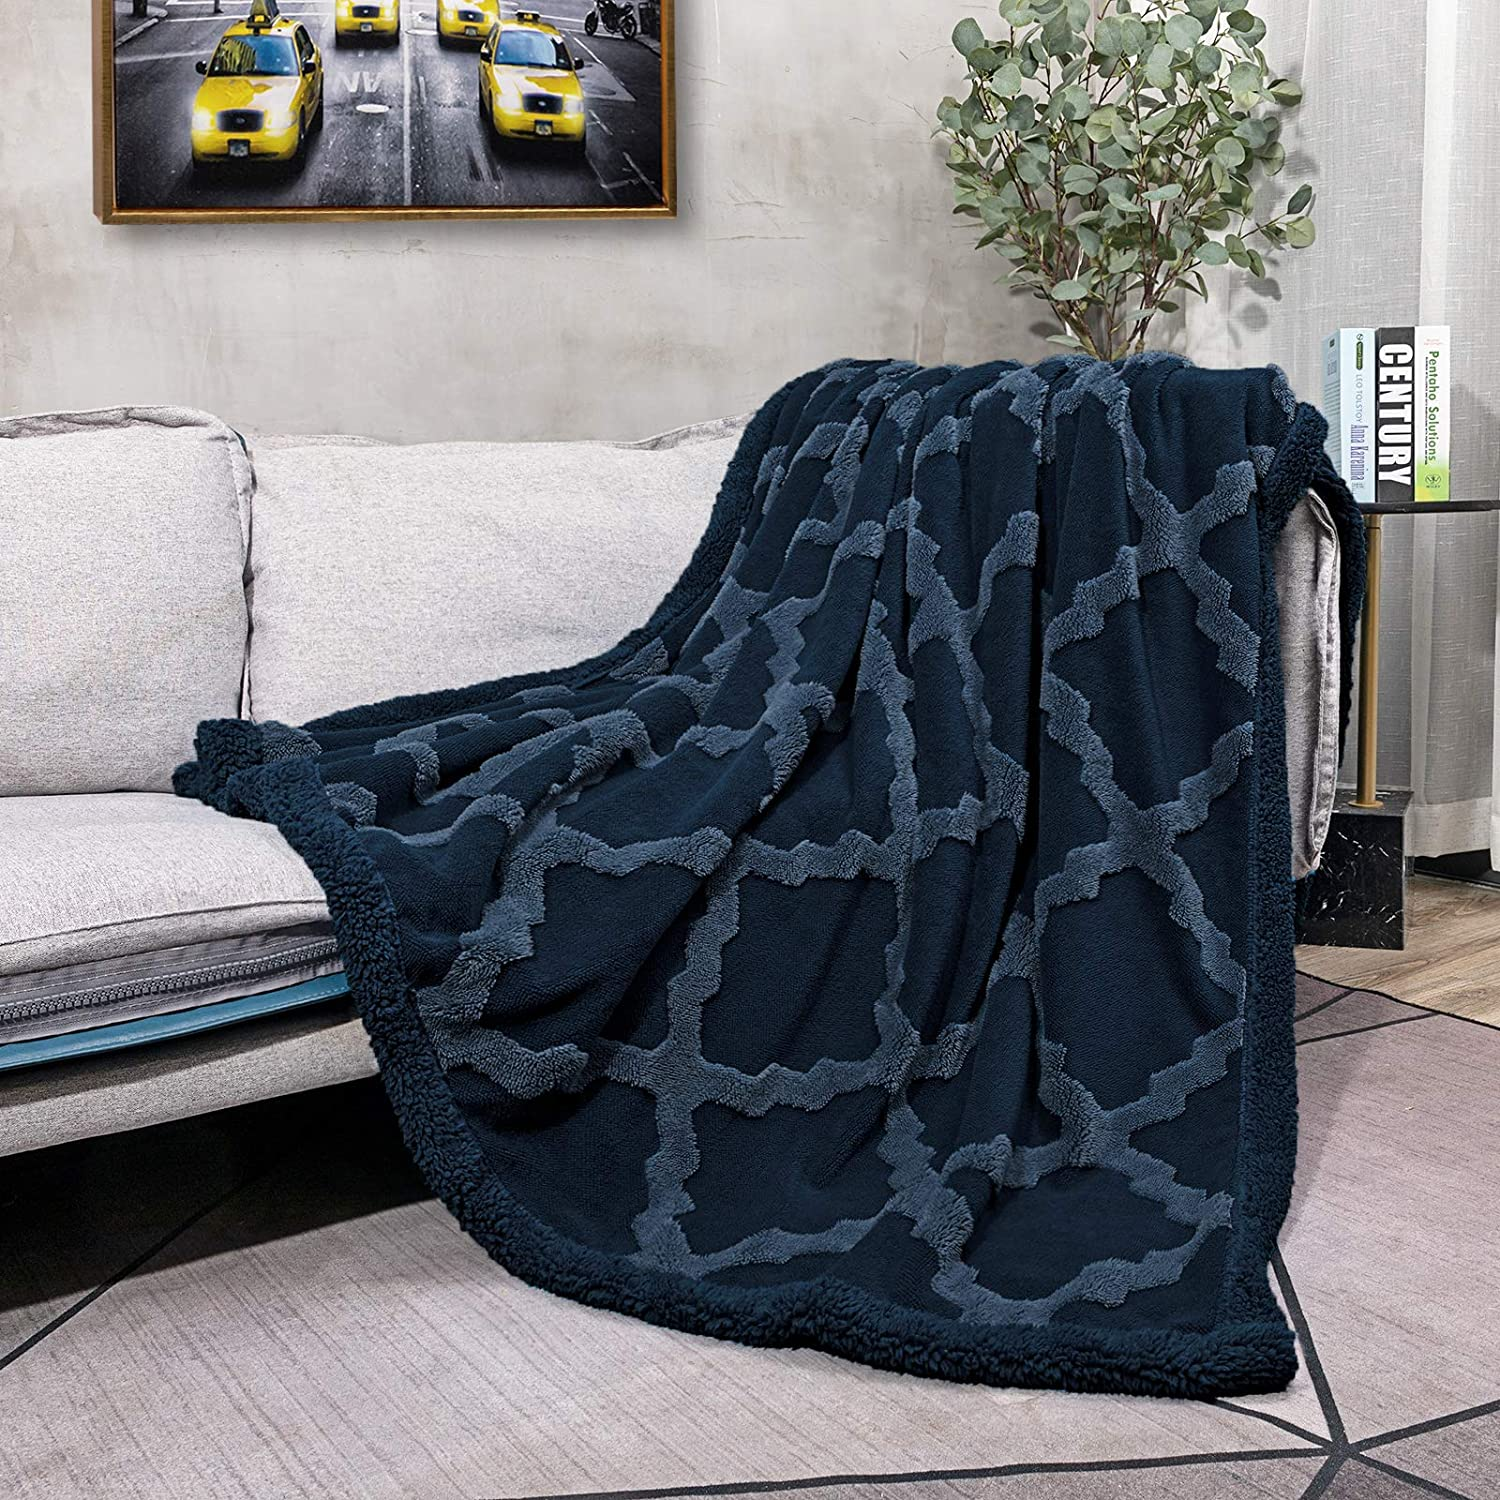 CAMPIR Sherpa Max 71% OFF Throw Blankets for Couch Special price Warm Dual Soft Side Super